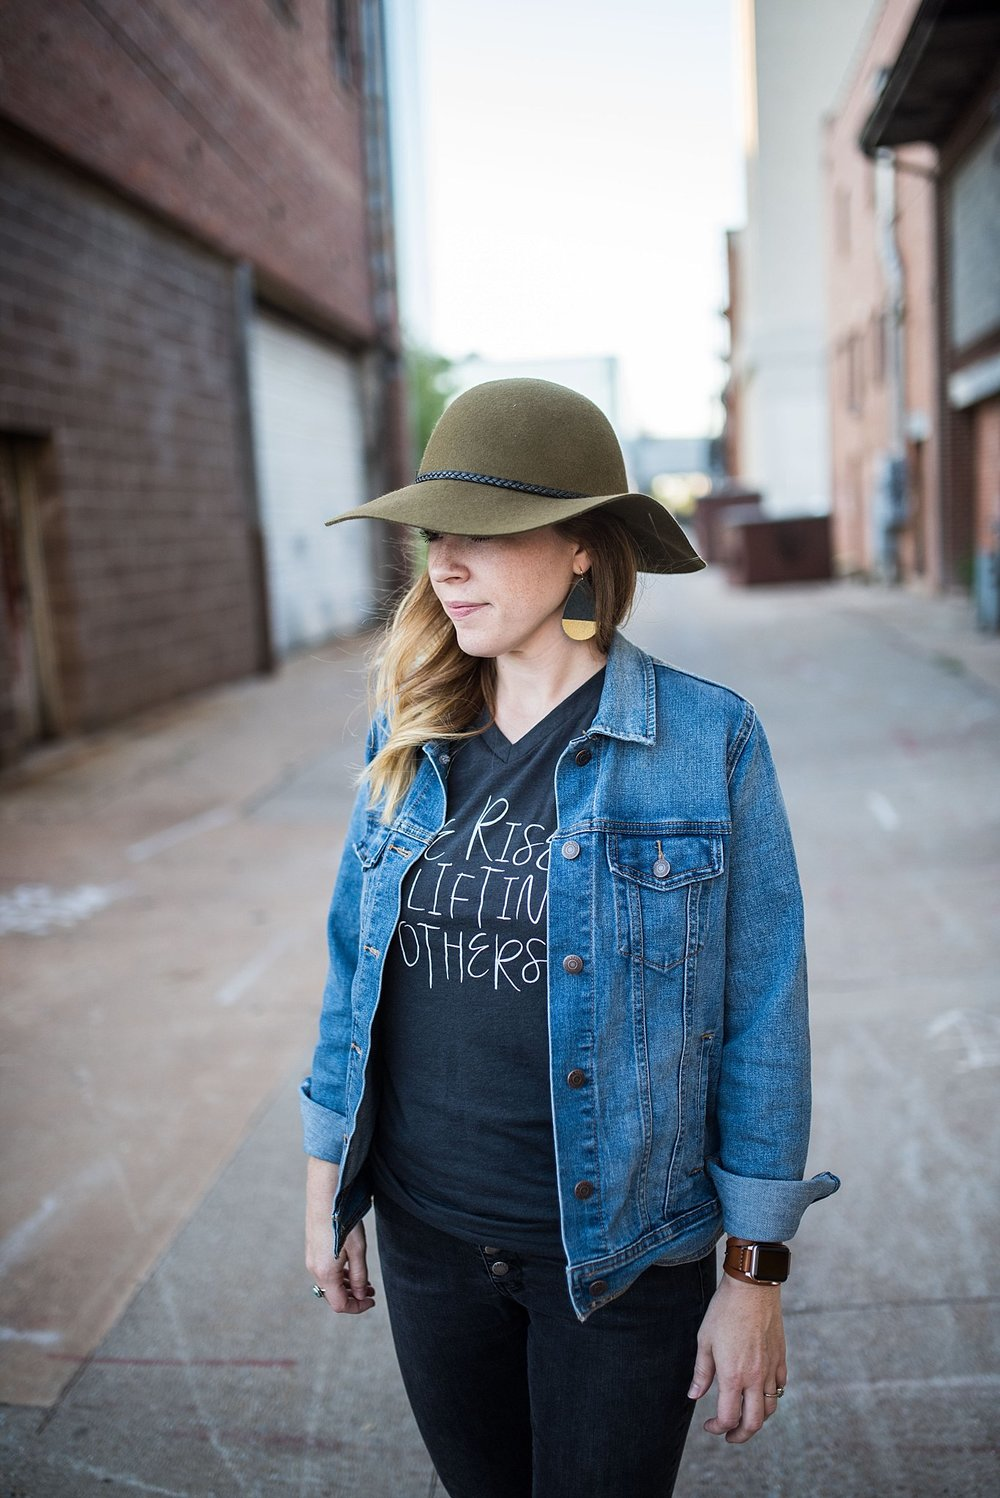 Ramble Apparel  || We rise by lifting others. || Hat:  Gigi Pip , Jacket:  Old Navy , Earrings:  m wood designs